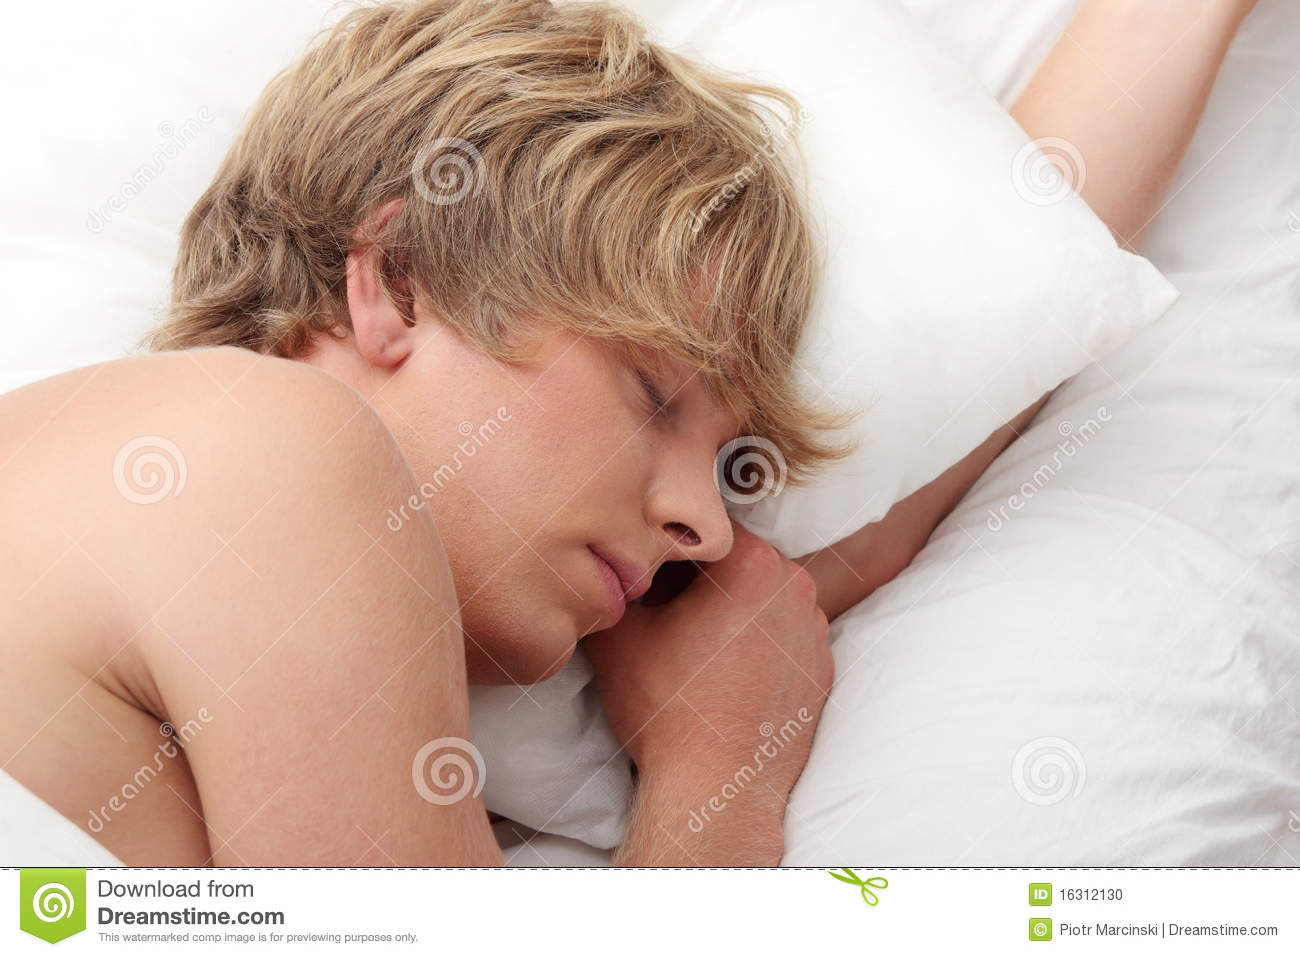 Man Sleeping In His Bed Stock Photo - Image: 16312130